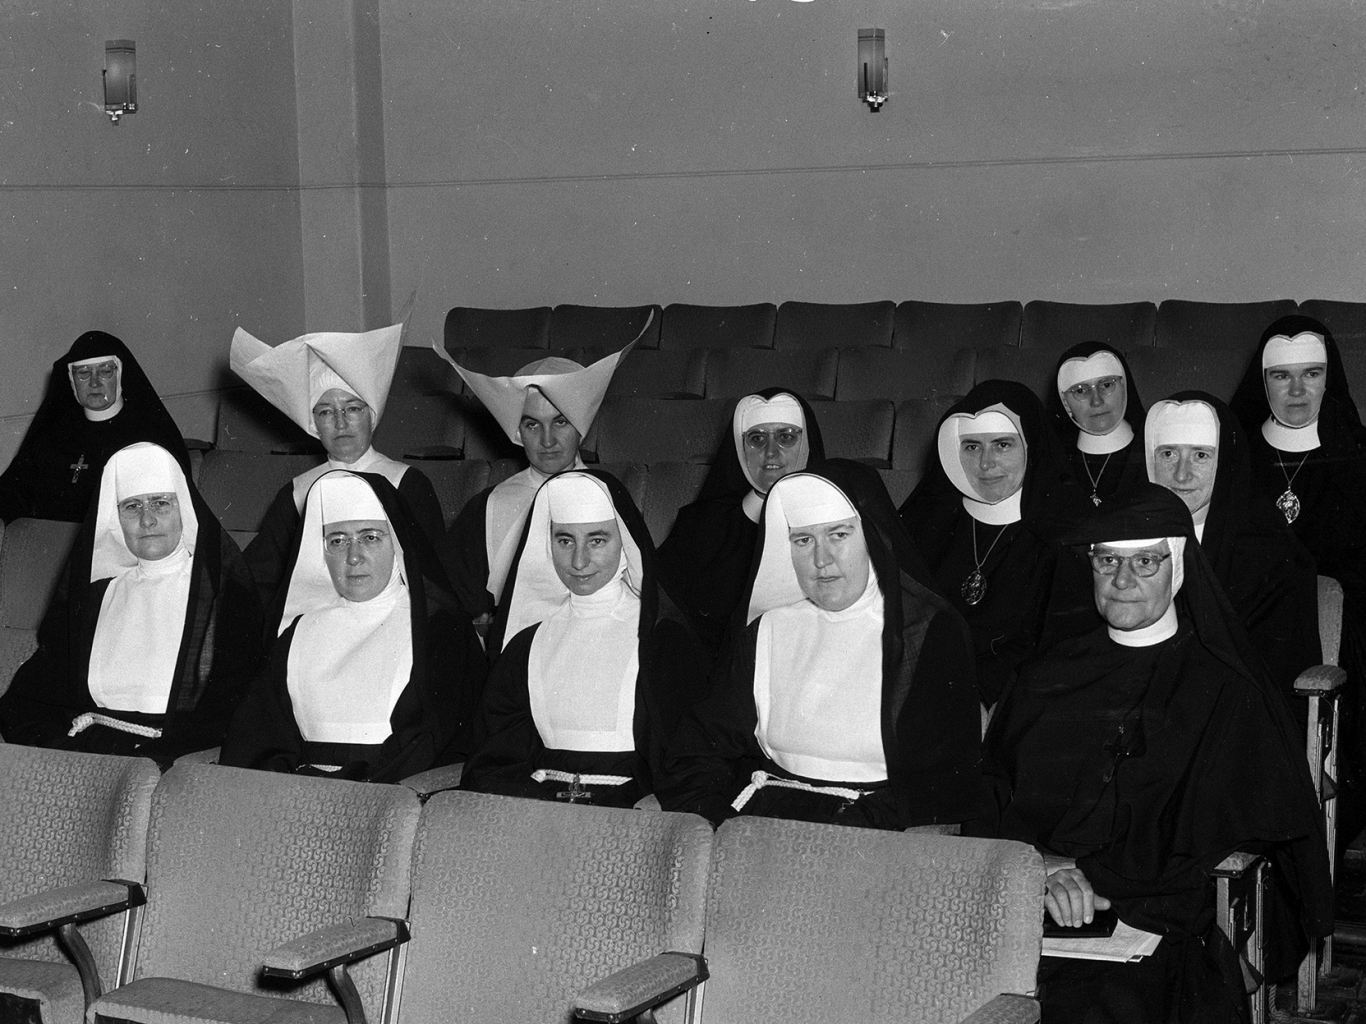 Group of nuns seated in rows.